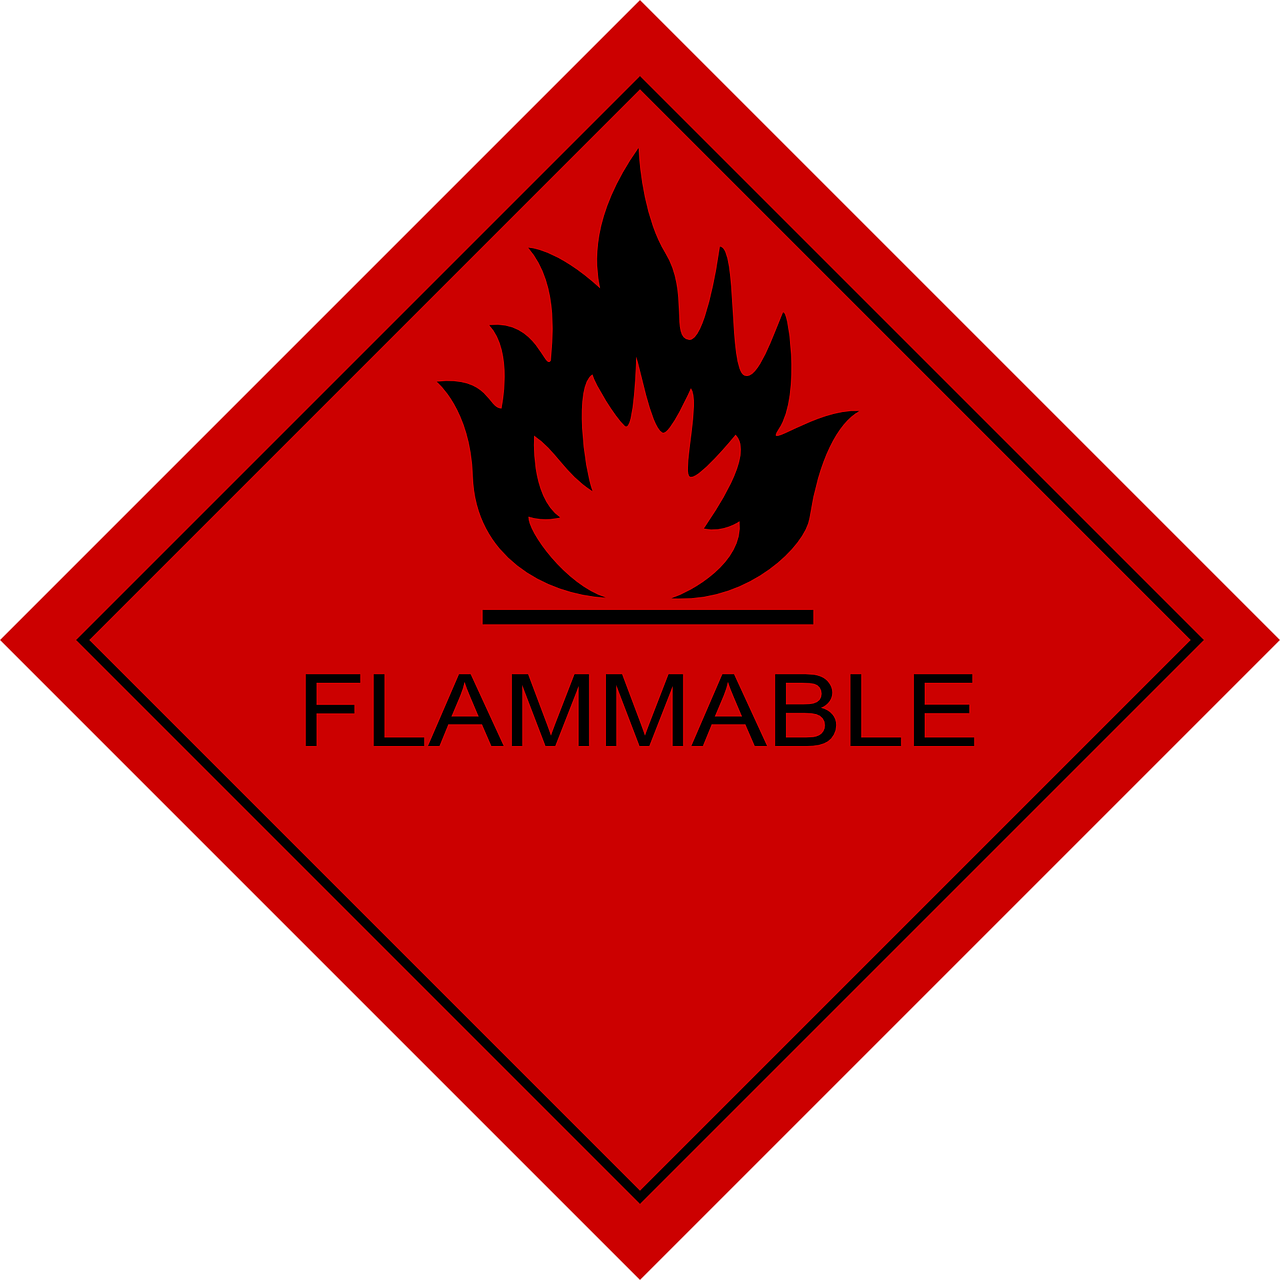 Flammable-Combustible-Material-1